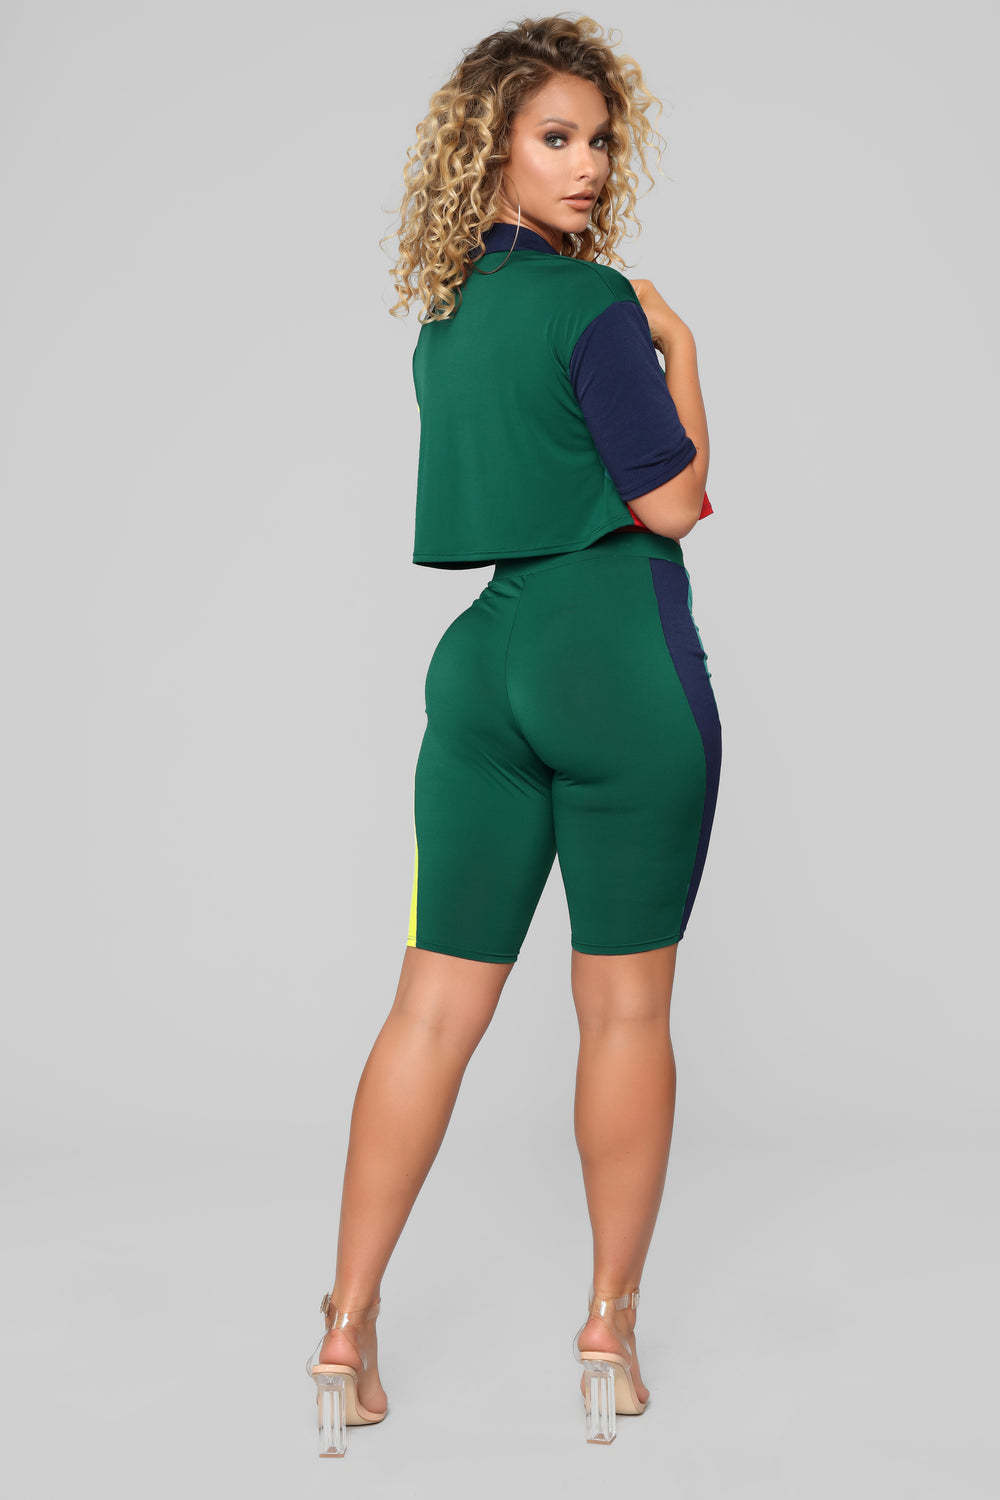 Freshest On The Block Set - Green/Combo